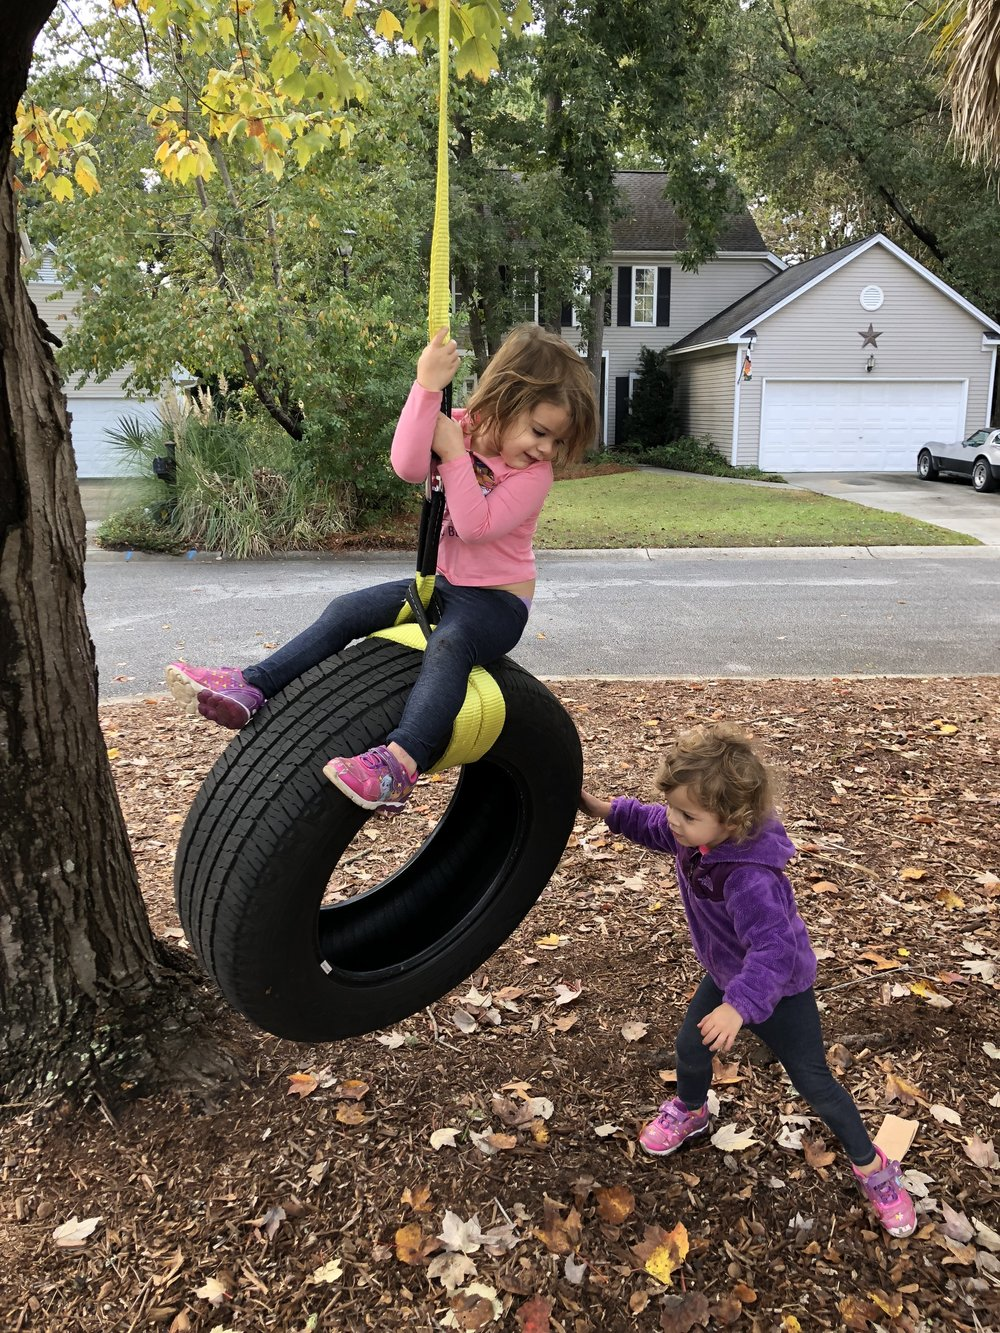 And best of all, Daddy made his girls a tire swing.